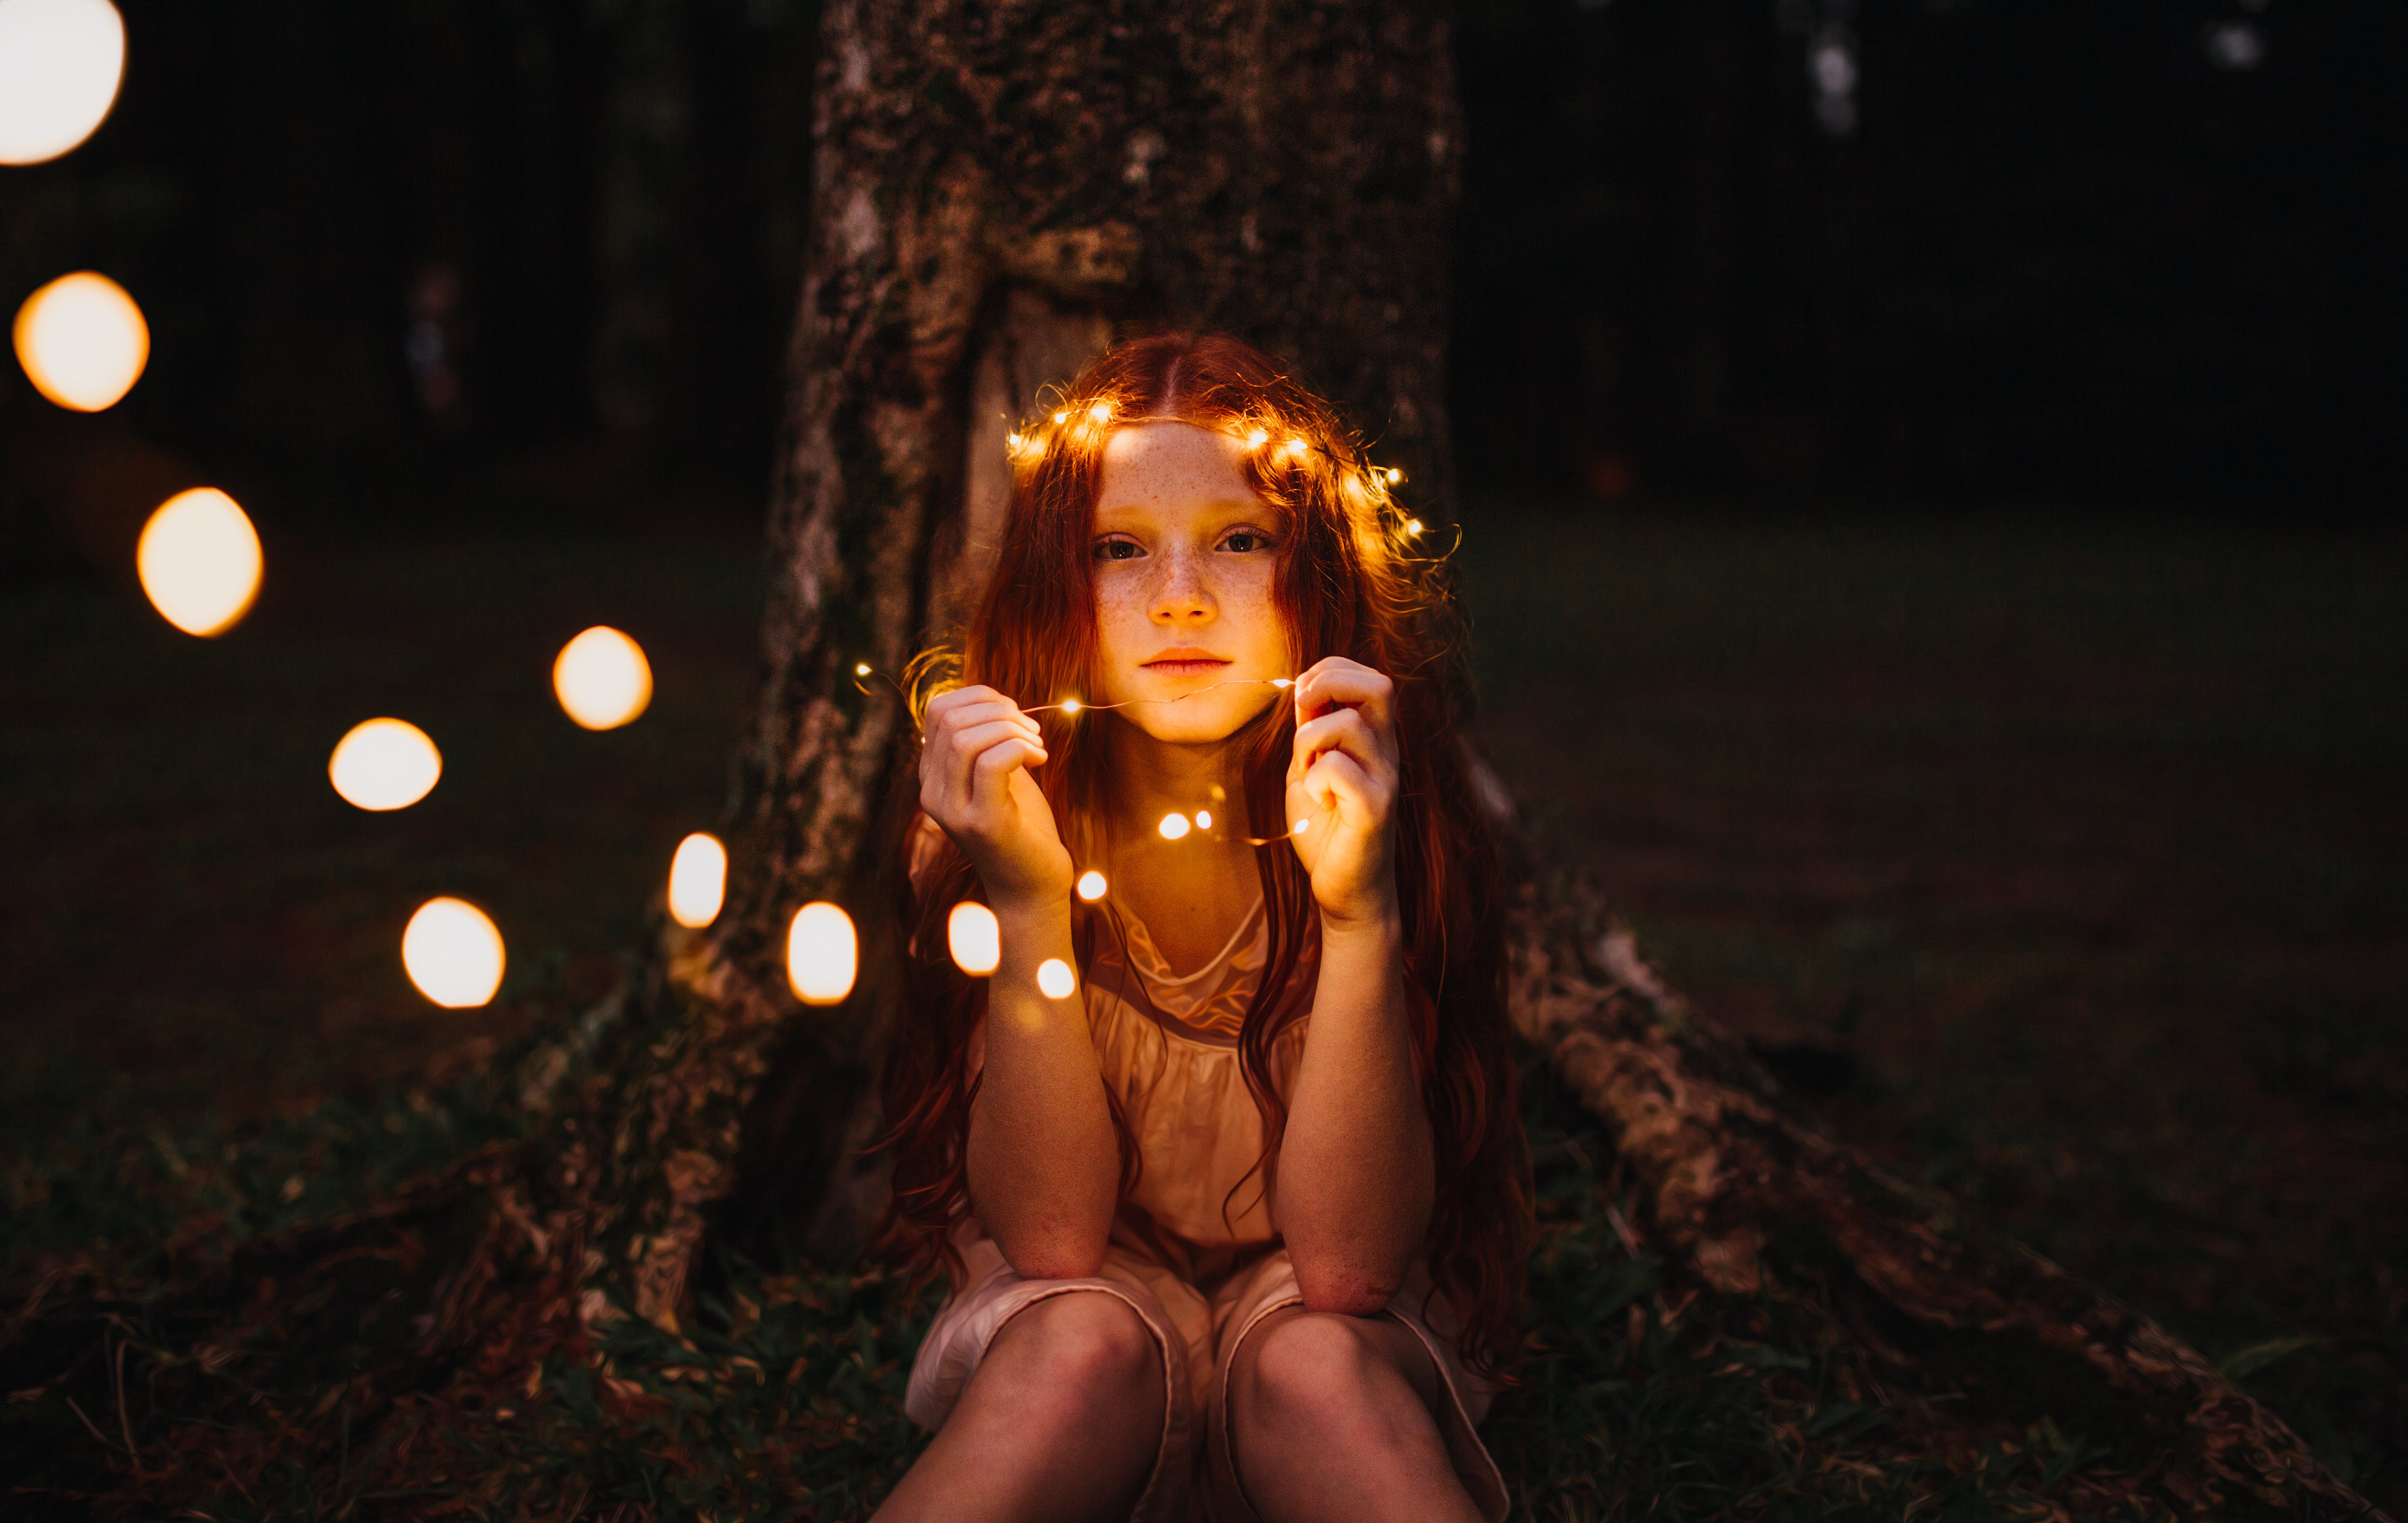 Girl Holding String Lights